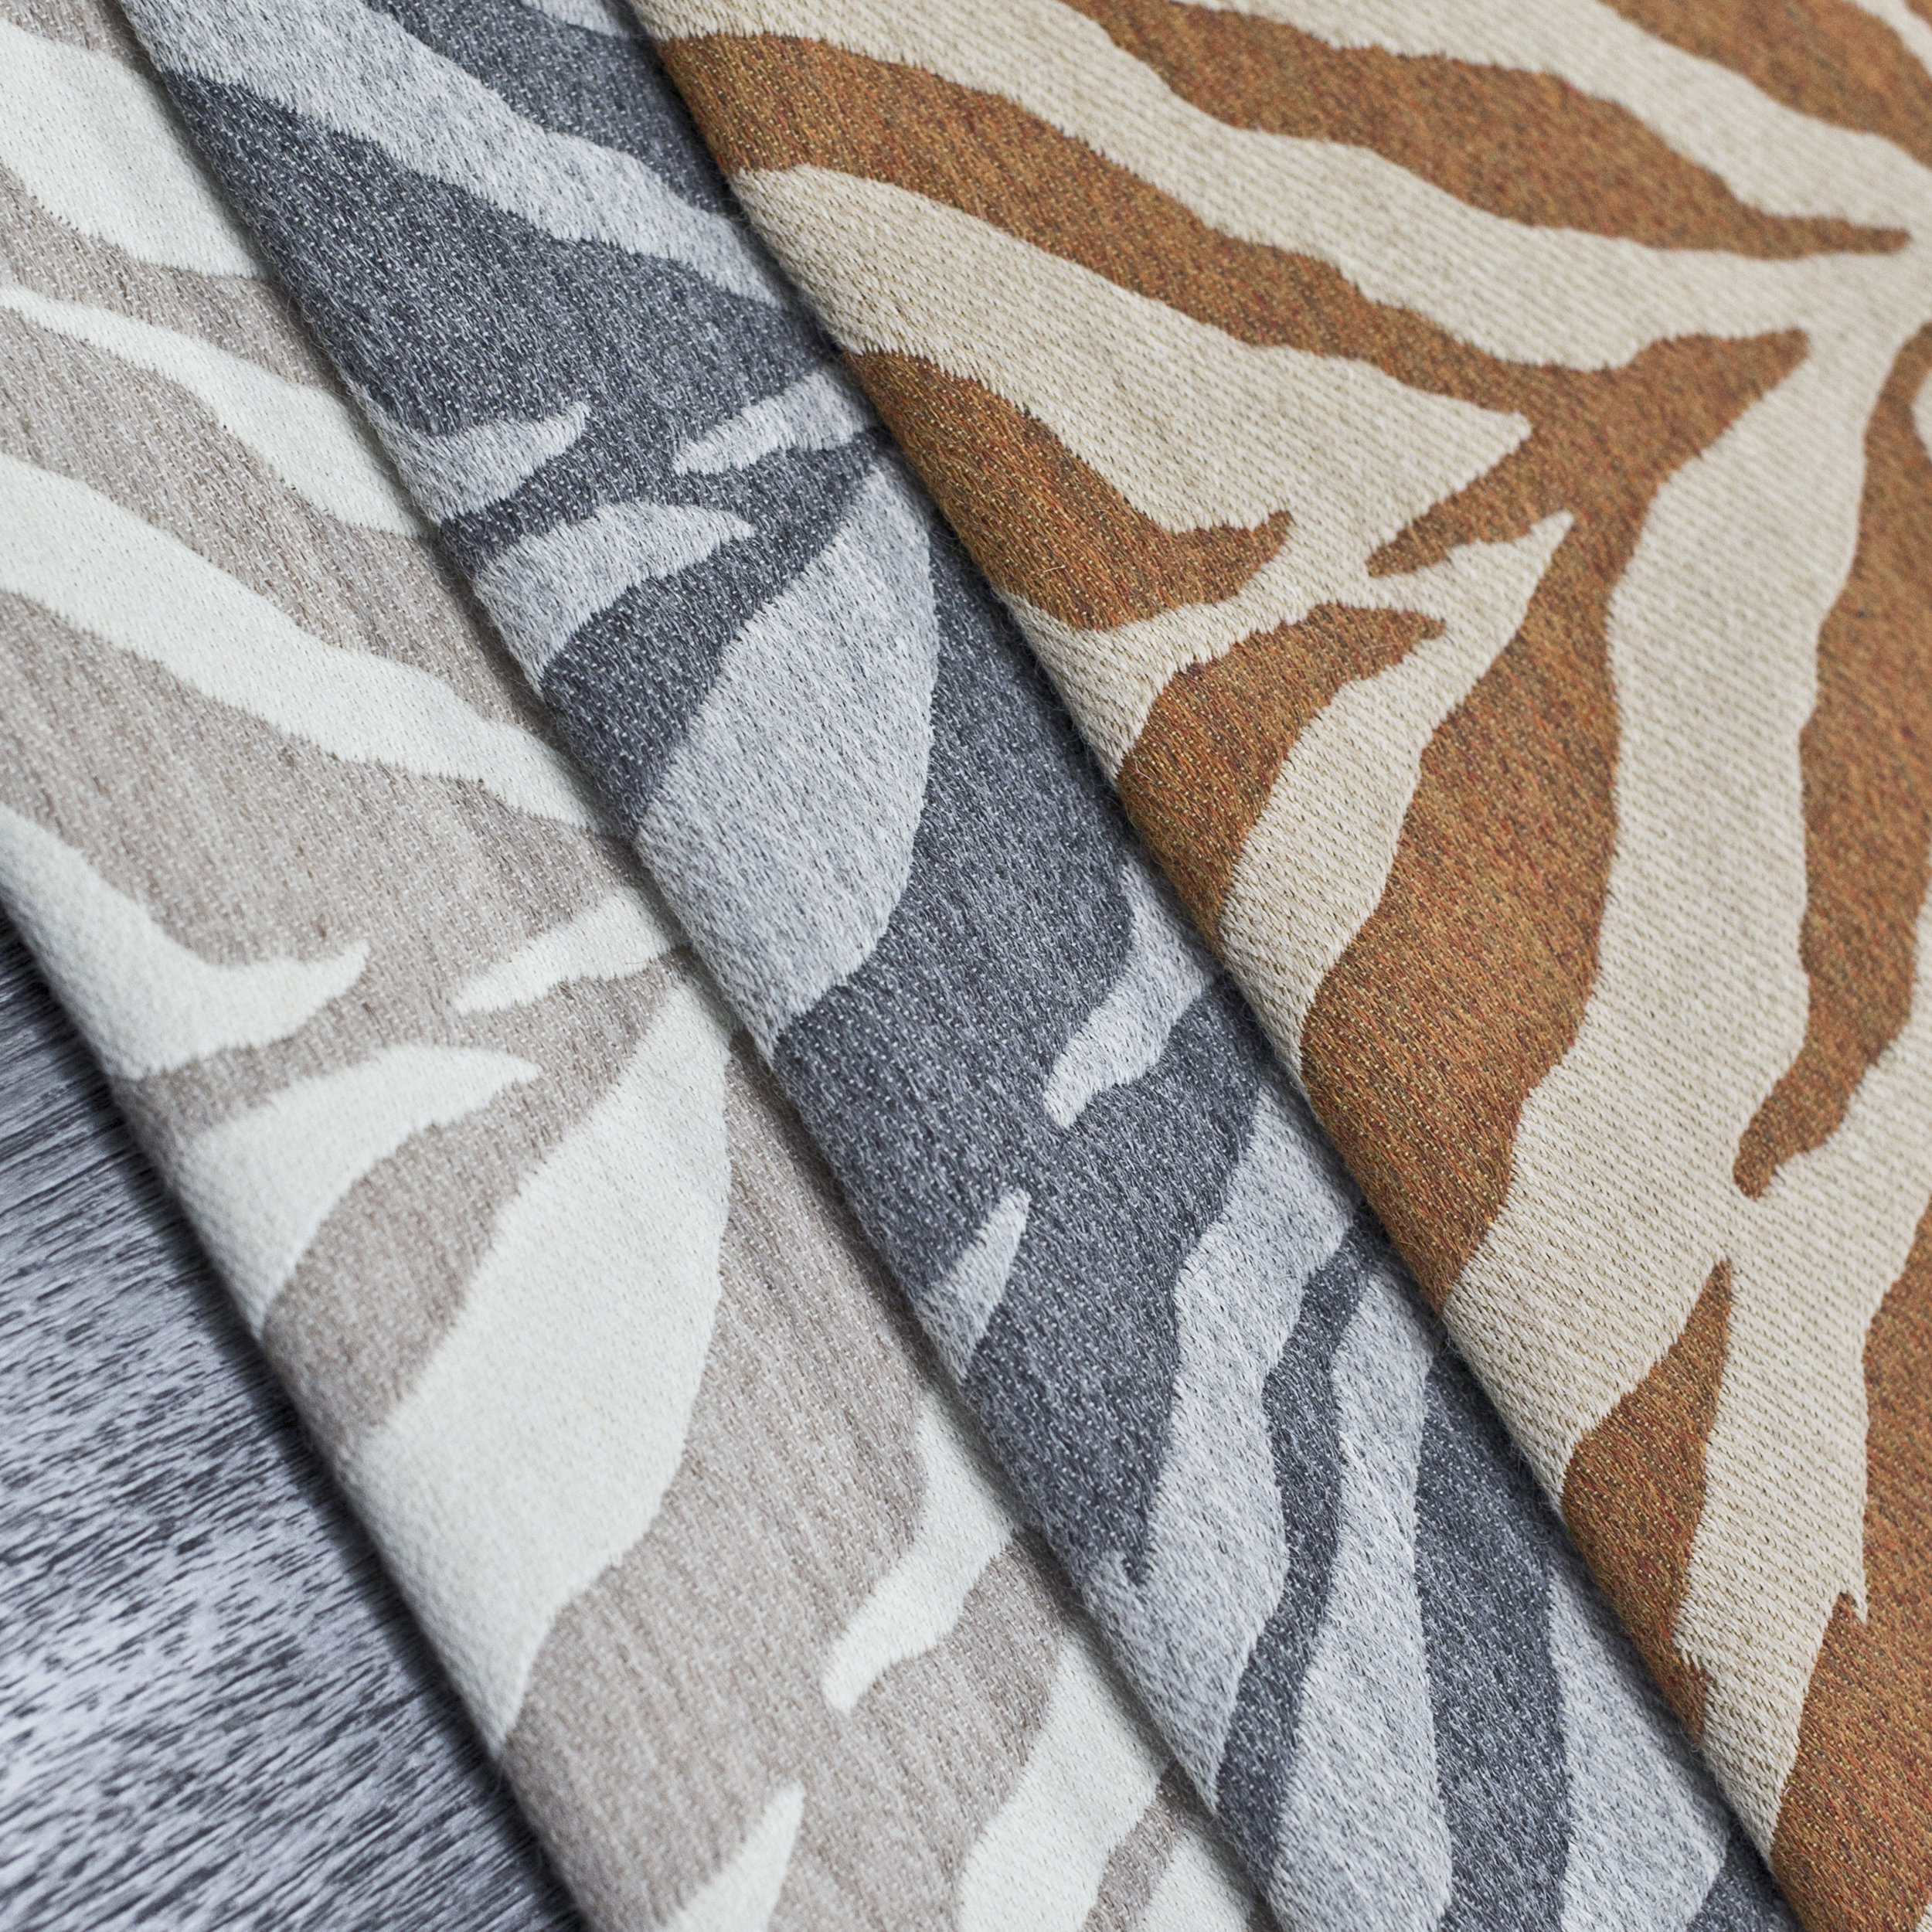 Panthera Tigris fabric collection composed of 67% Peruvian Baby Alpaca, 33% Egyptian Cotton